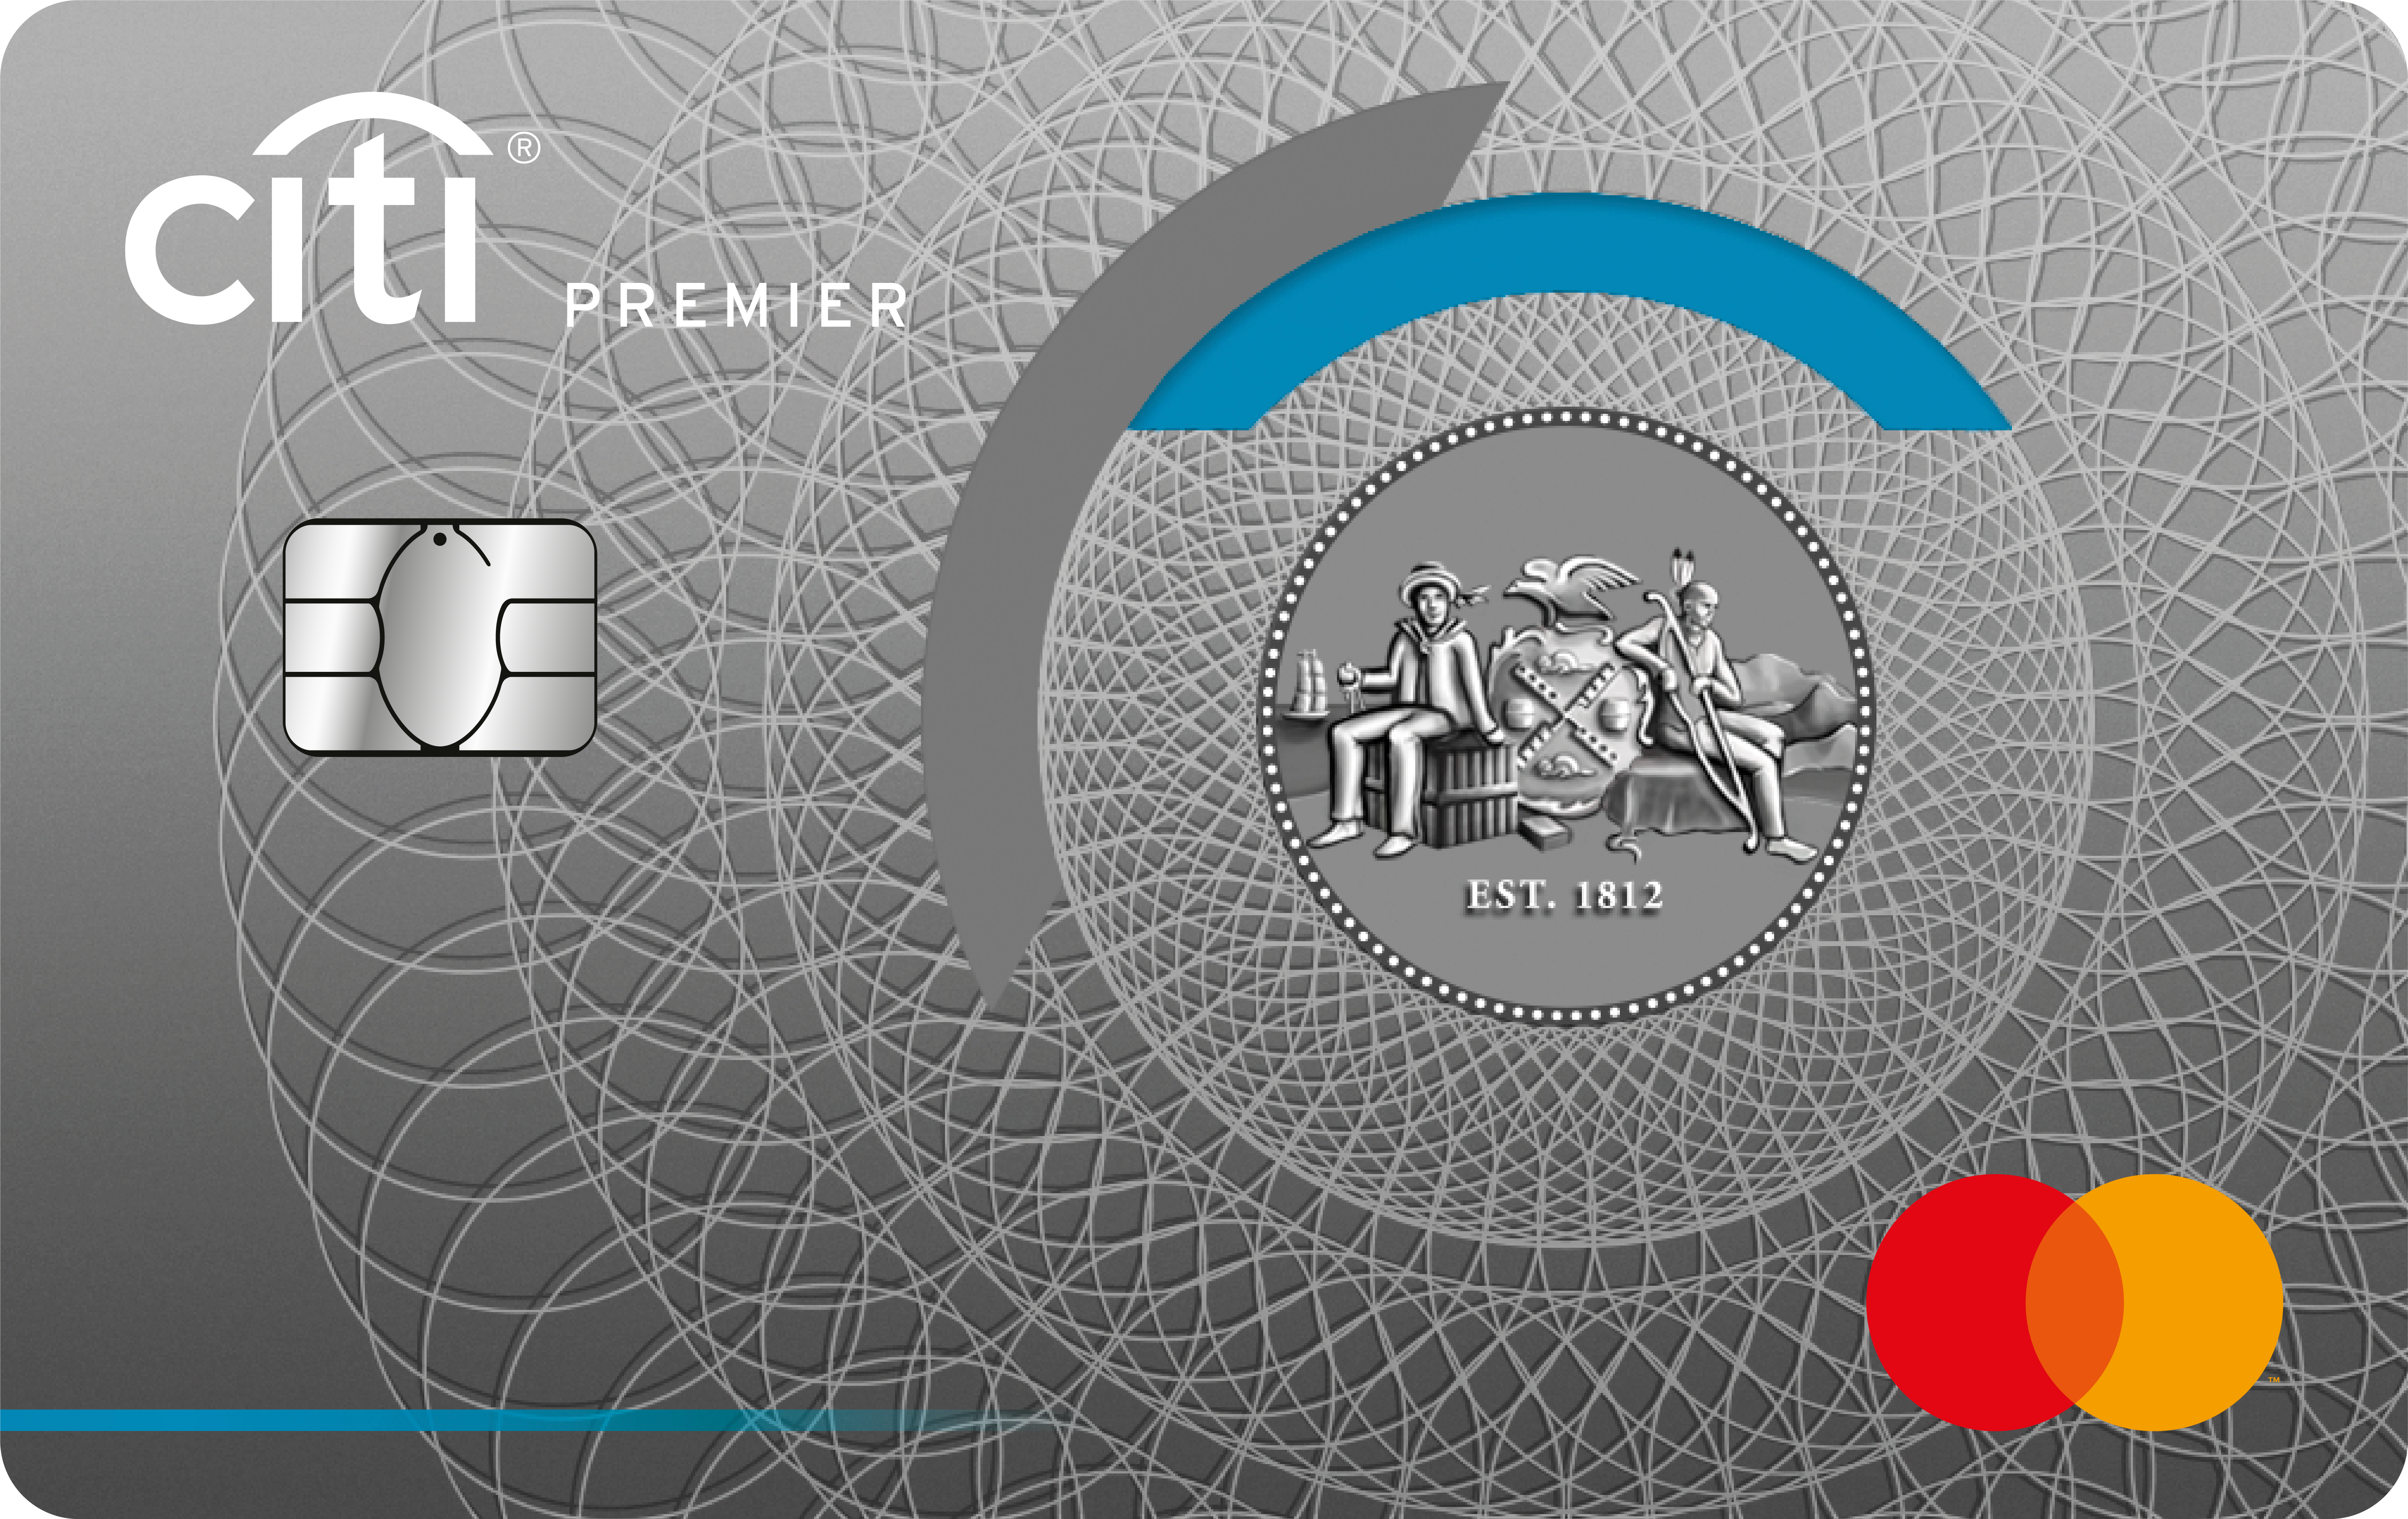 Citi Premier Credit Card Points Offer